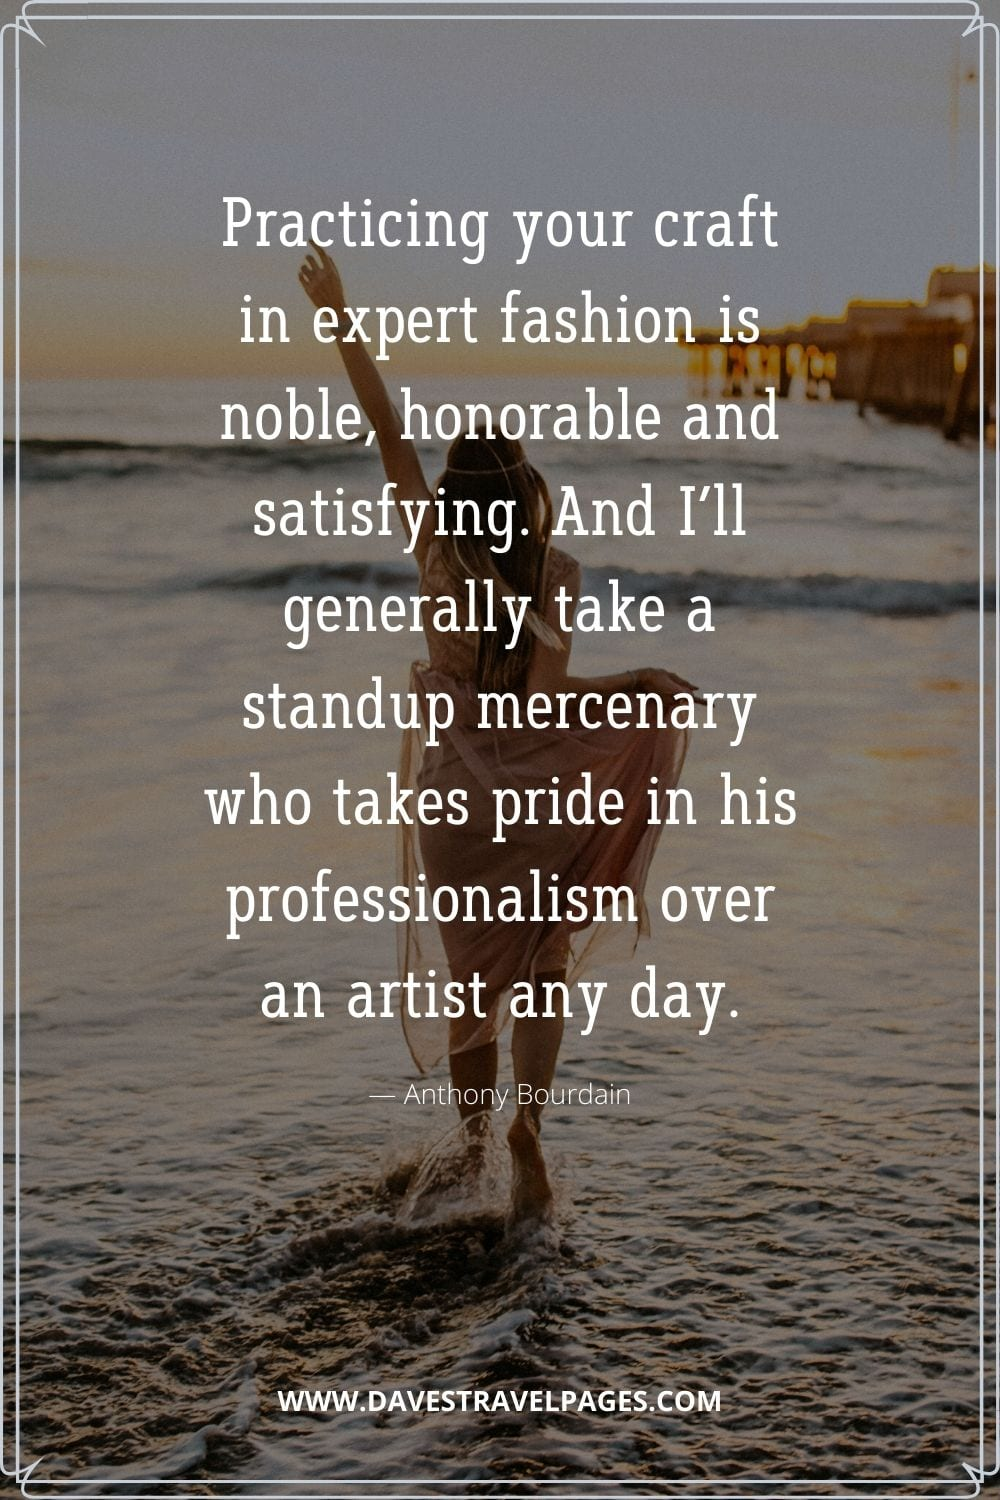 """""""Practicing your craft in expert fashion is noble, honorable and satisfying. And I'll generally take a standup mercenary who takes pride in his professionalism over an artist any day.""""― Anthony Bourdain on being professional"""